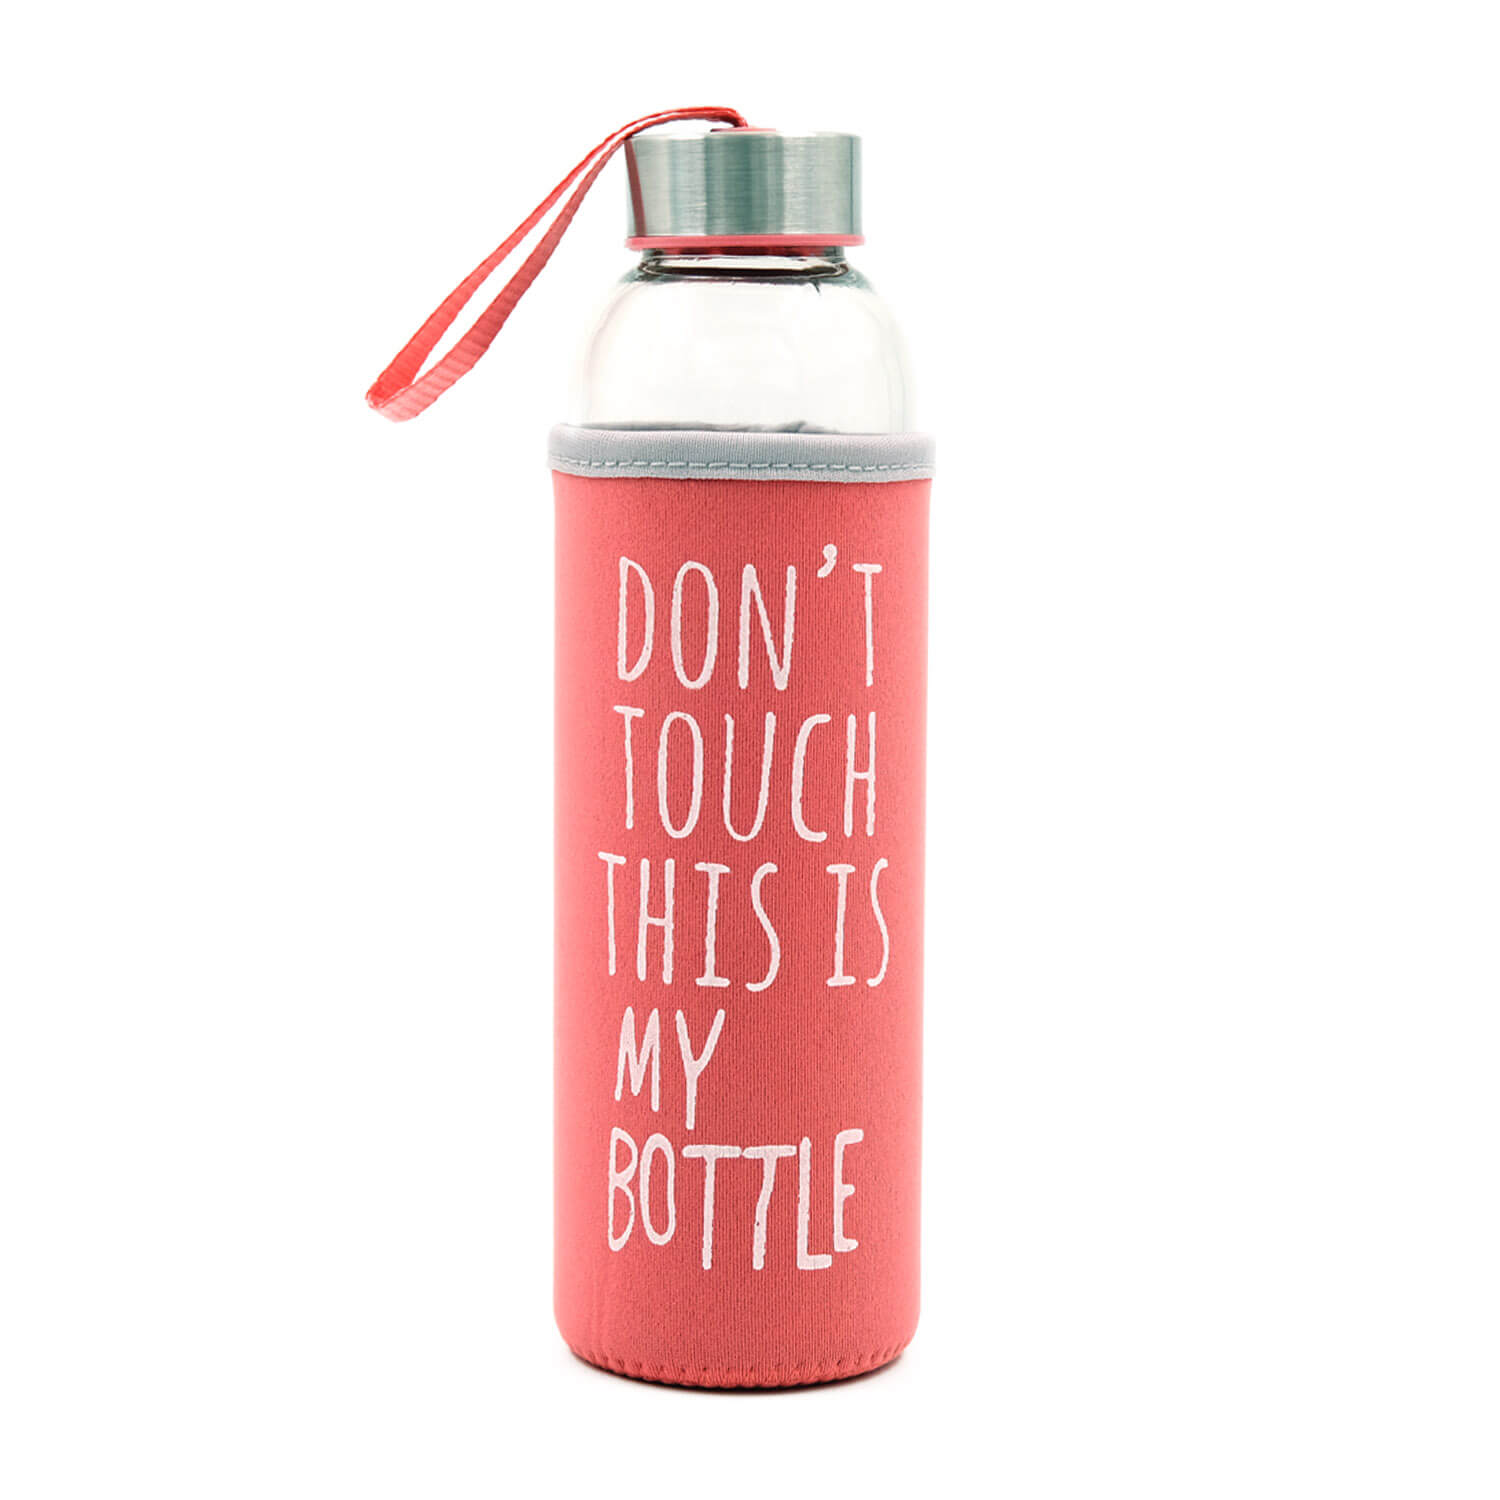 Dont Touch This Is My Bottle - Somon